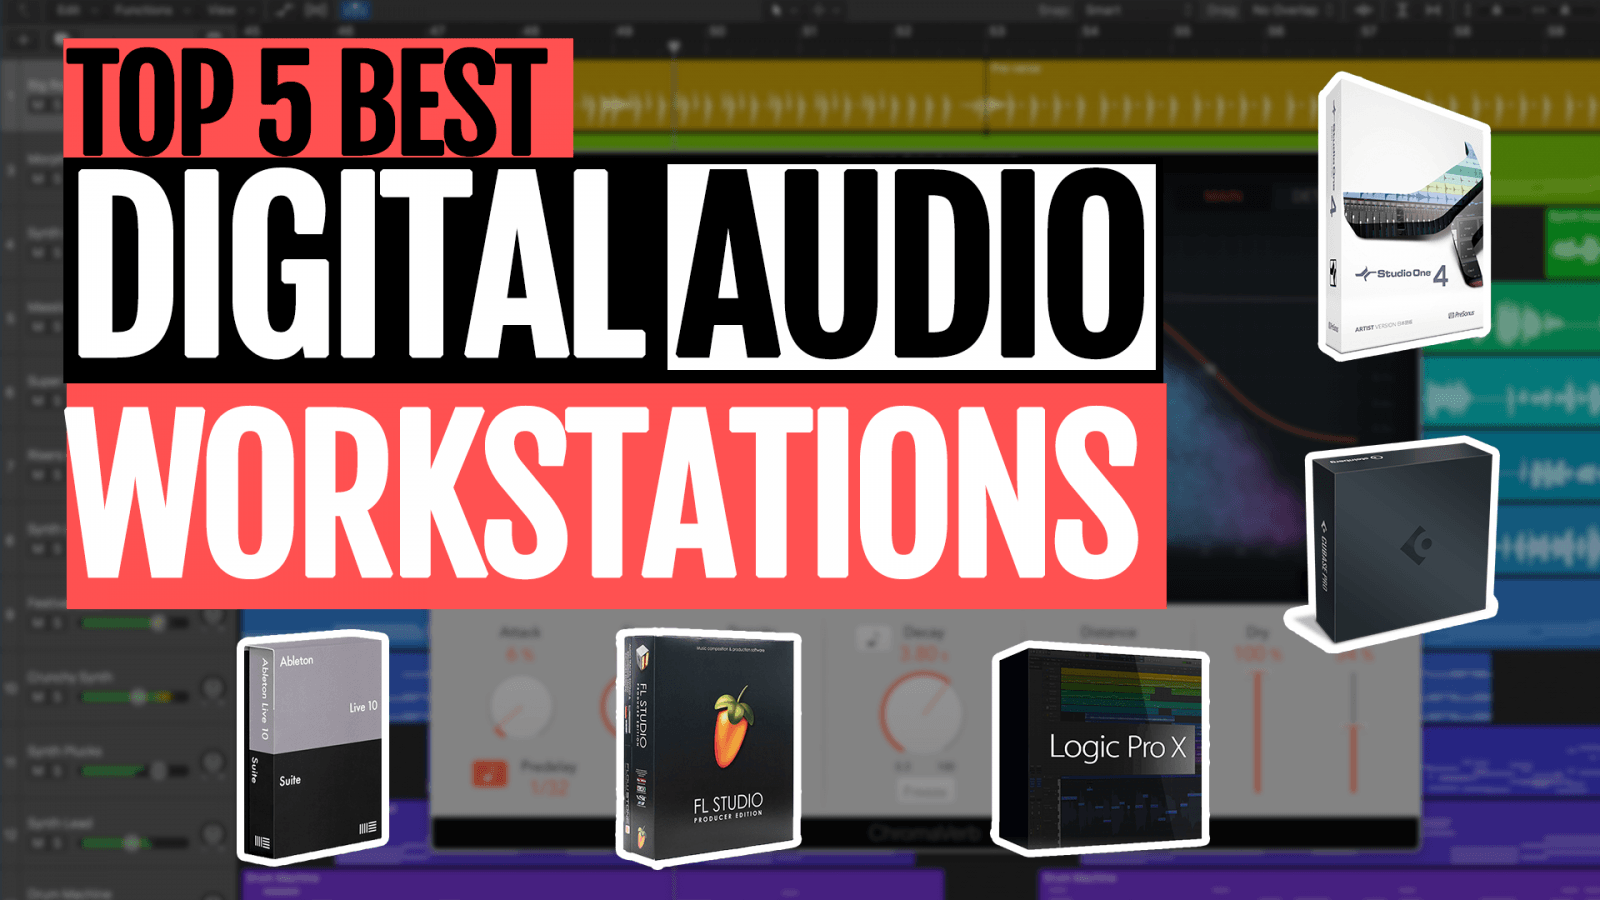 Top 5 Best Digital Audio Workstations - Music Production Software